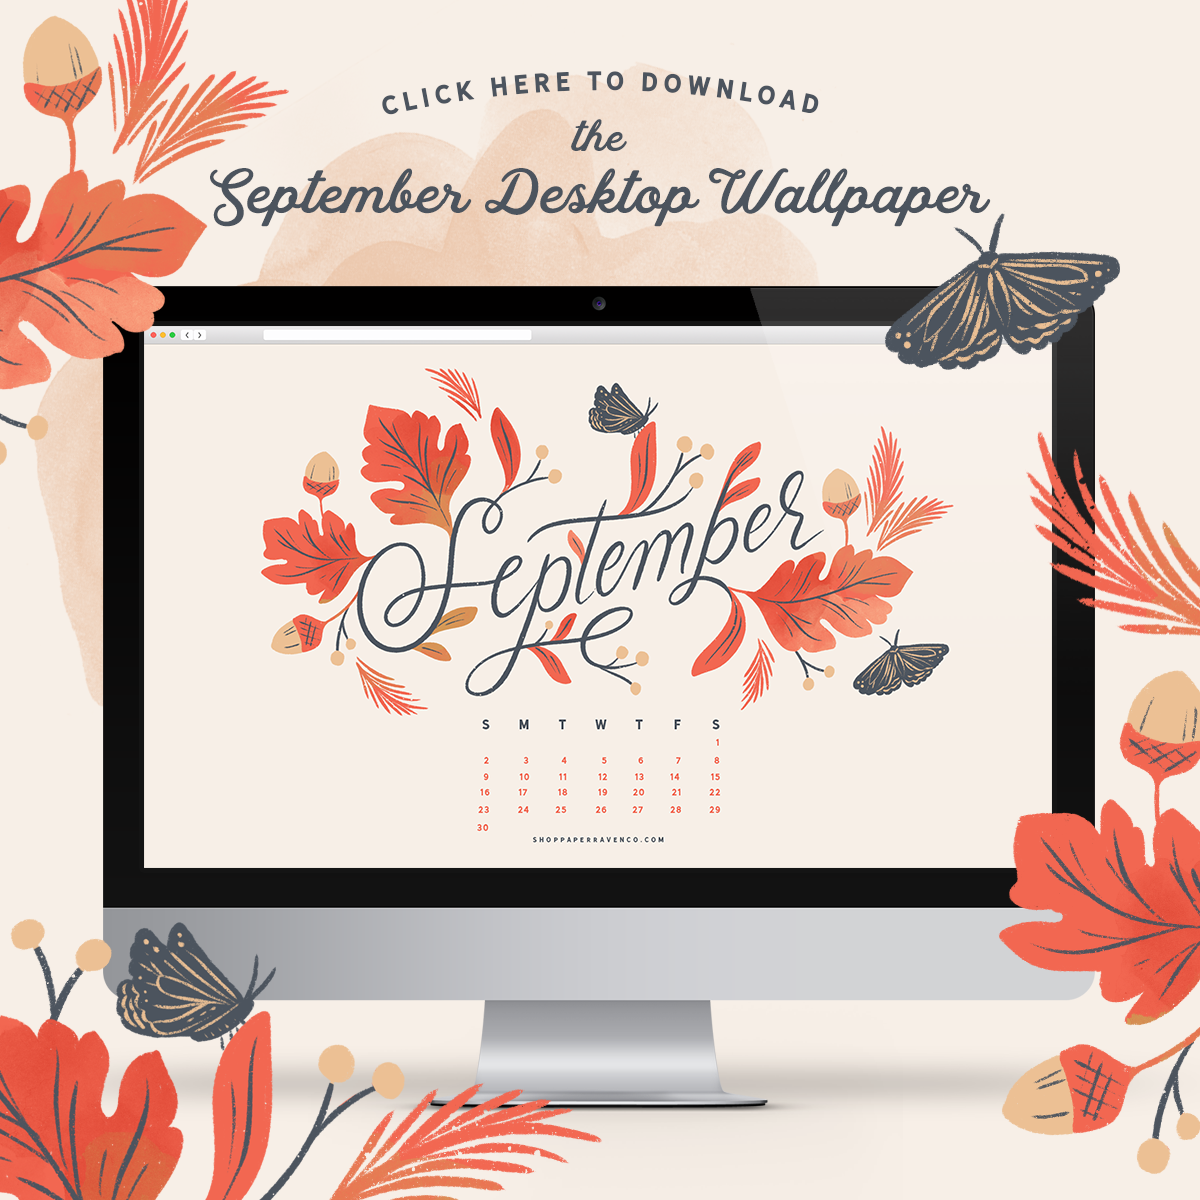 Paper Raven Co. September 2018 Desktop Wallpaper - www.ShopPaperRavenCo.com